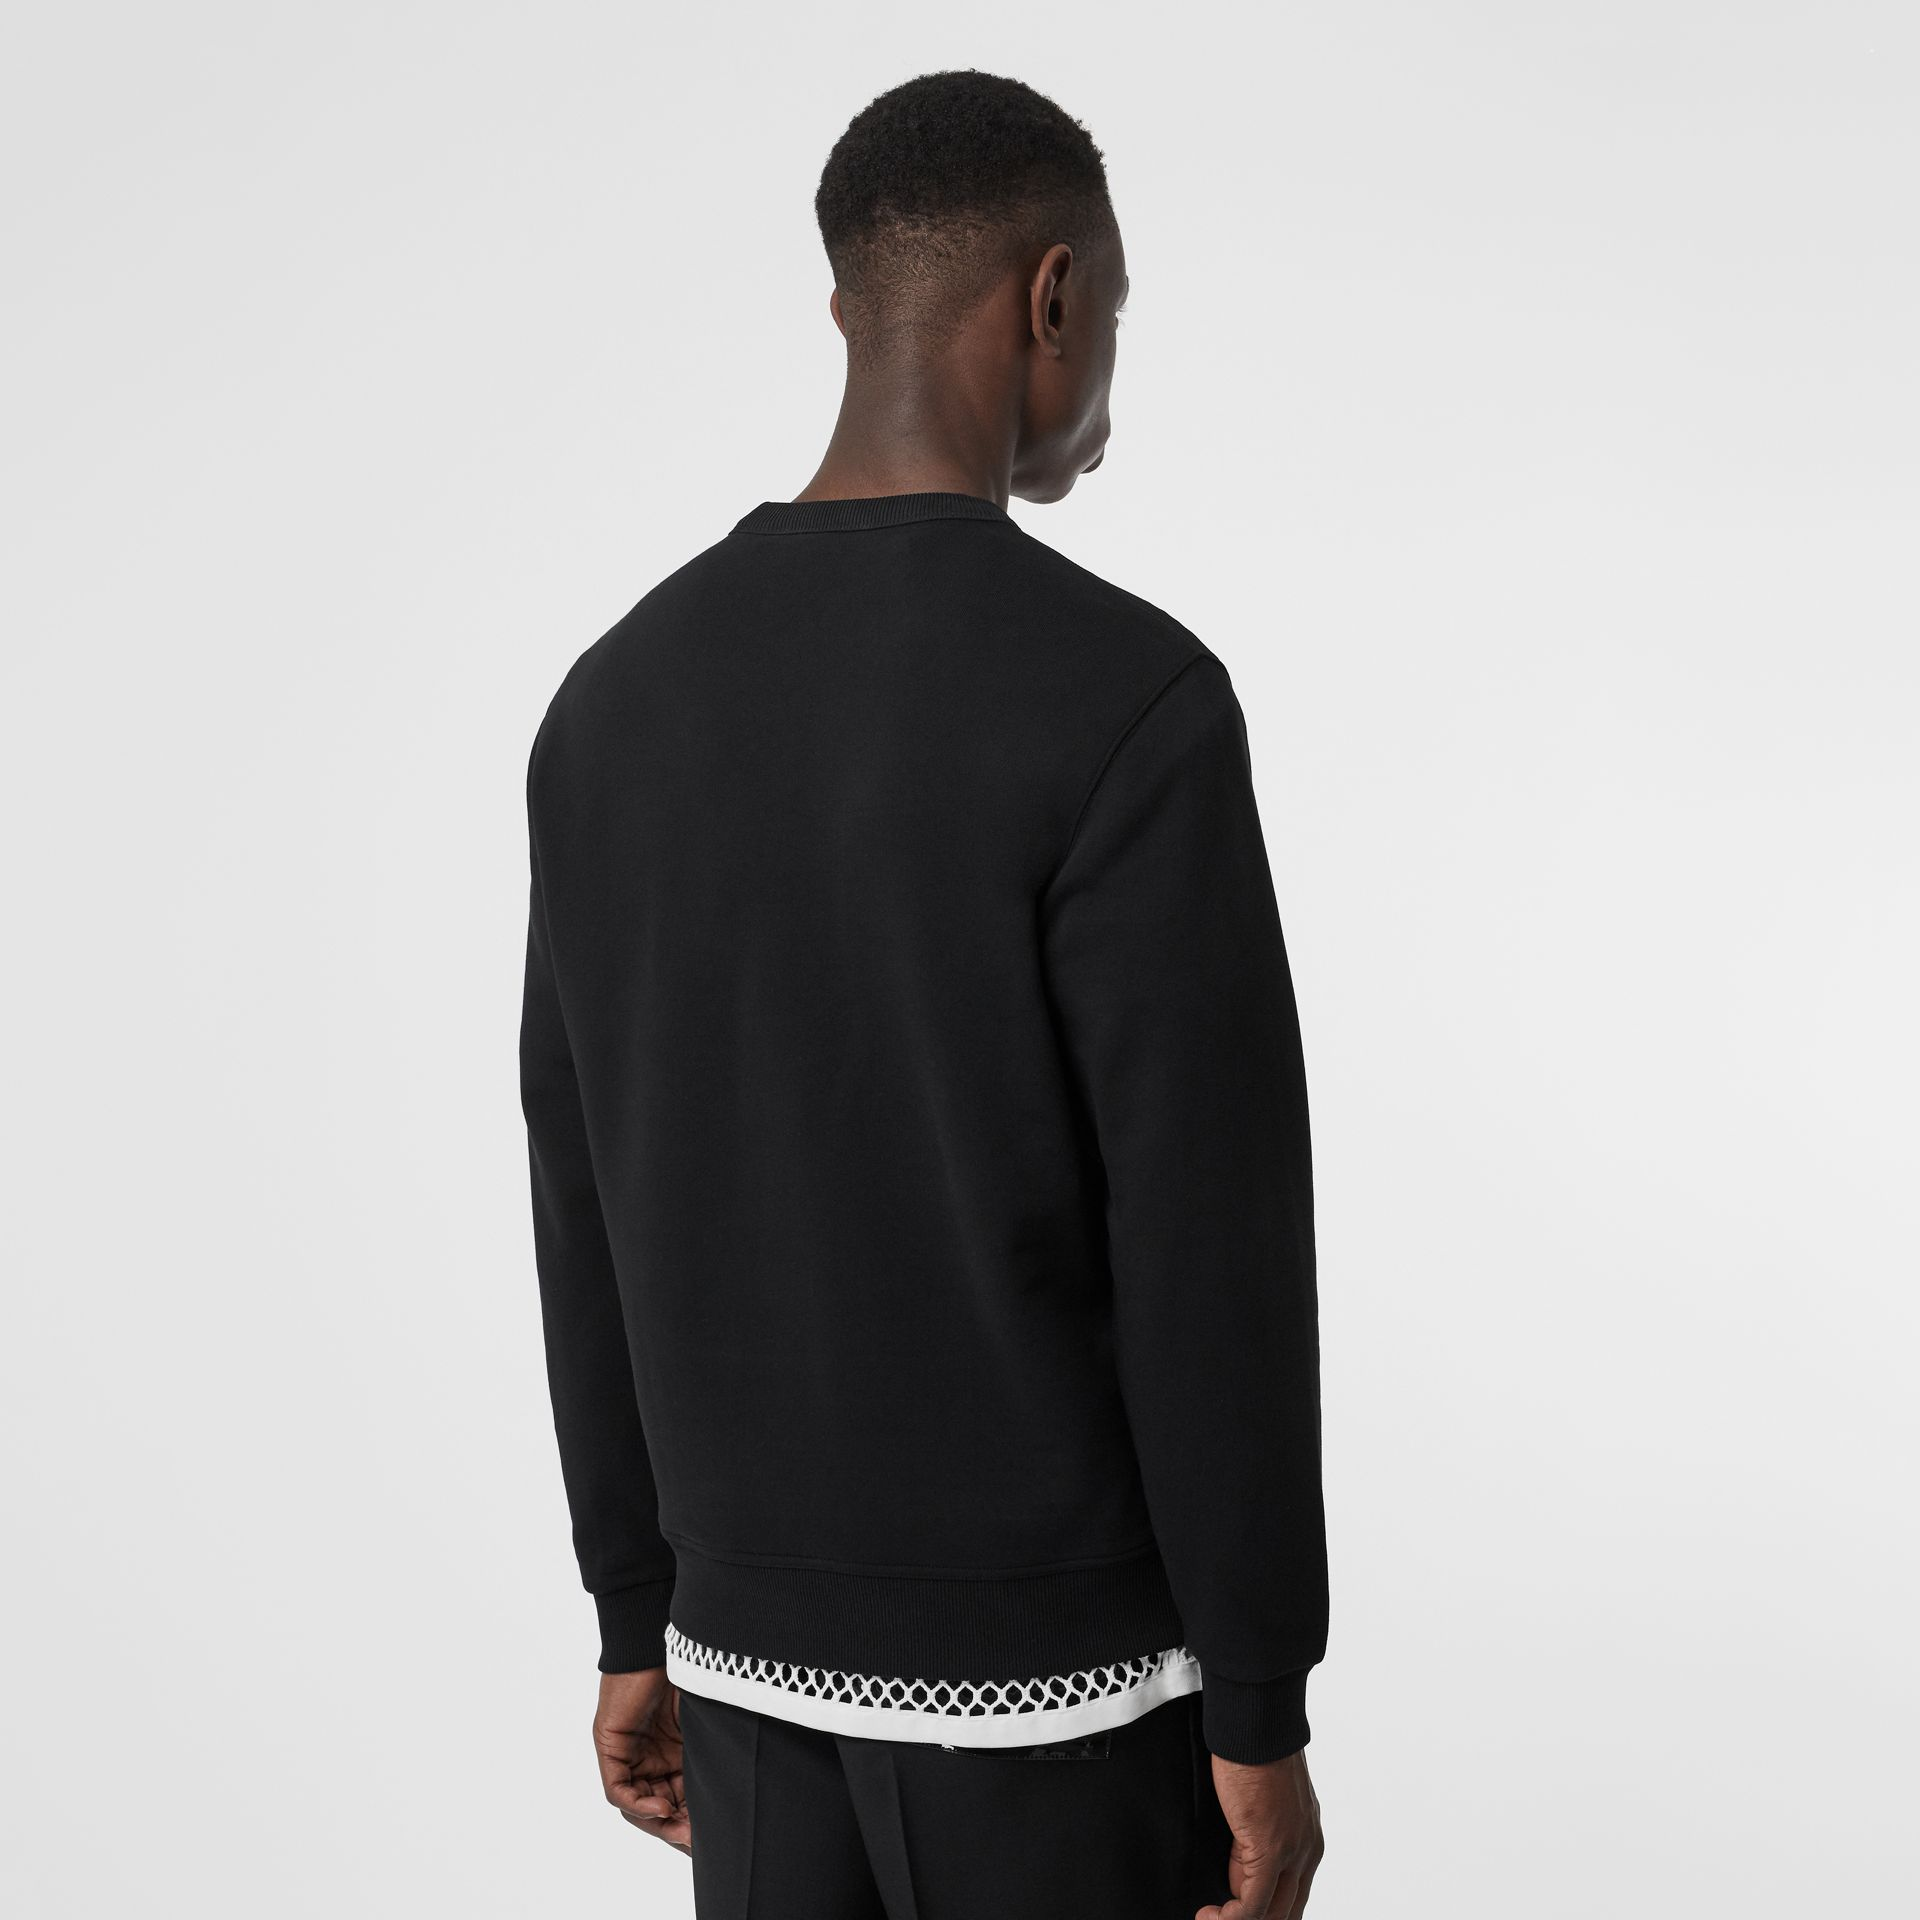 Sweat-shirt en coton avec logo (Noir) - Homme | Burberry - photo de la galerie 2